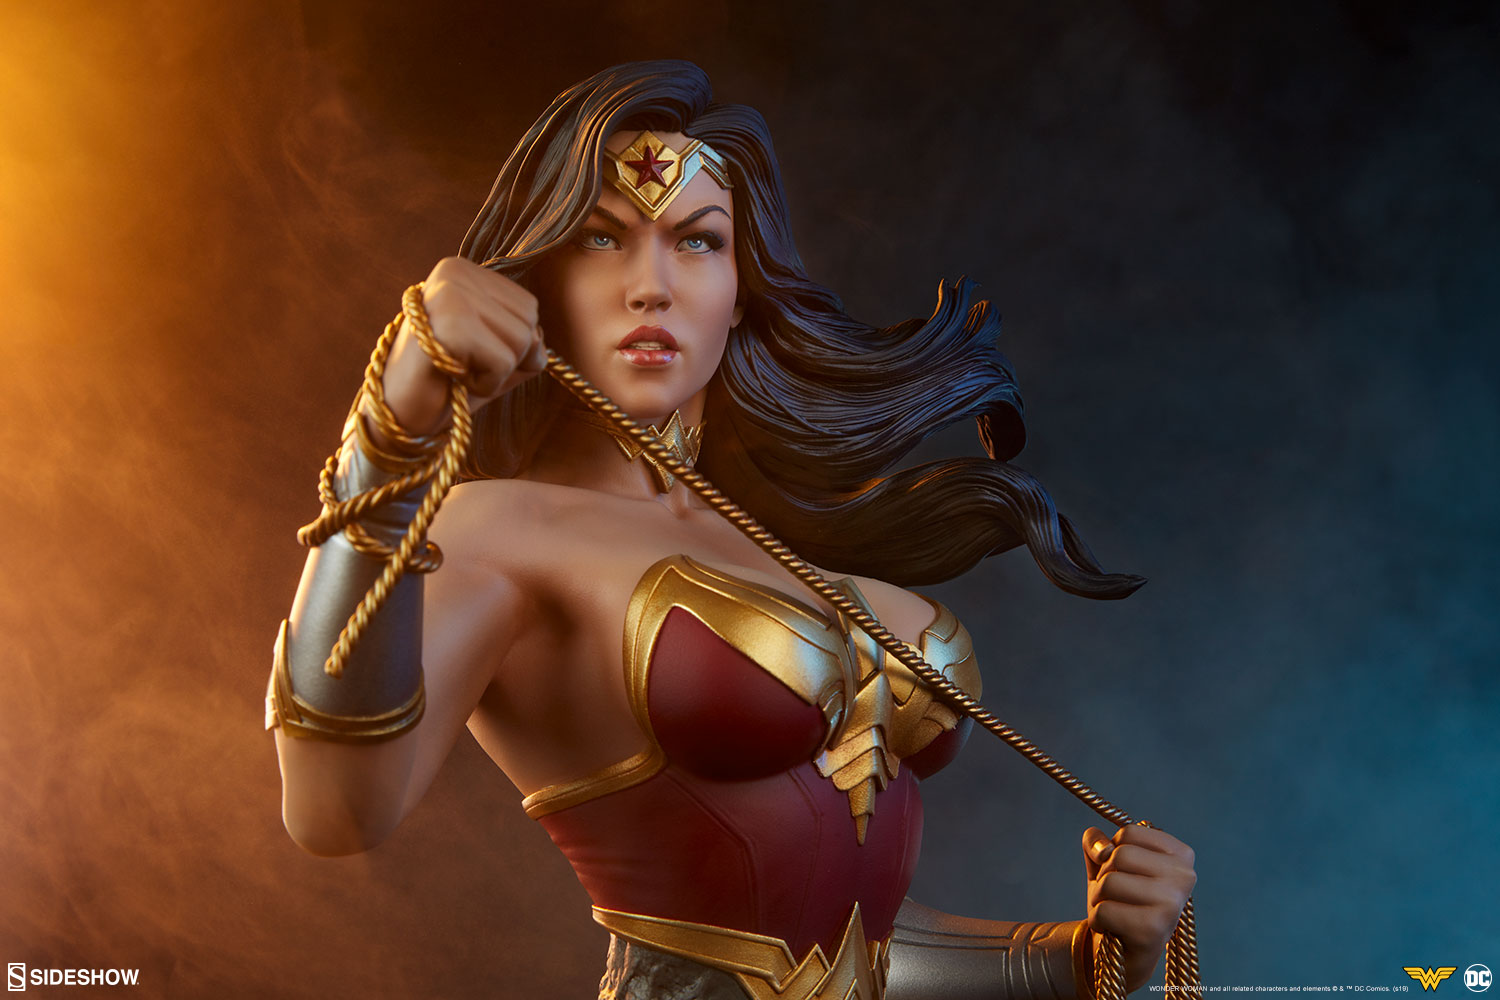 Sideshow DC Comics Wonder Woman Bust